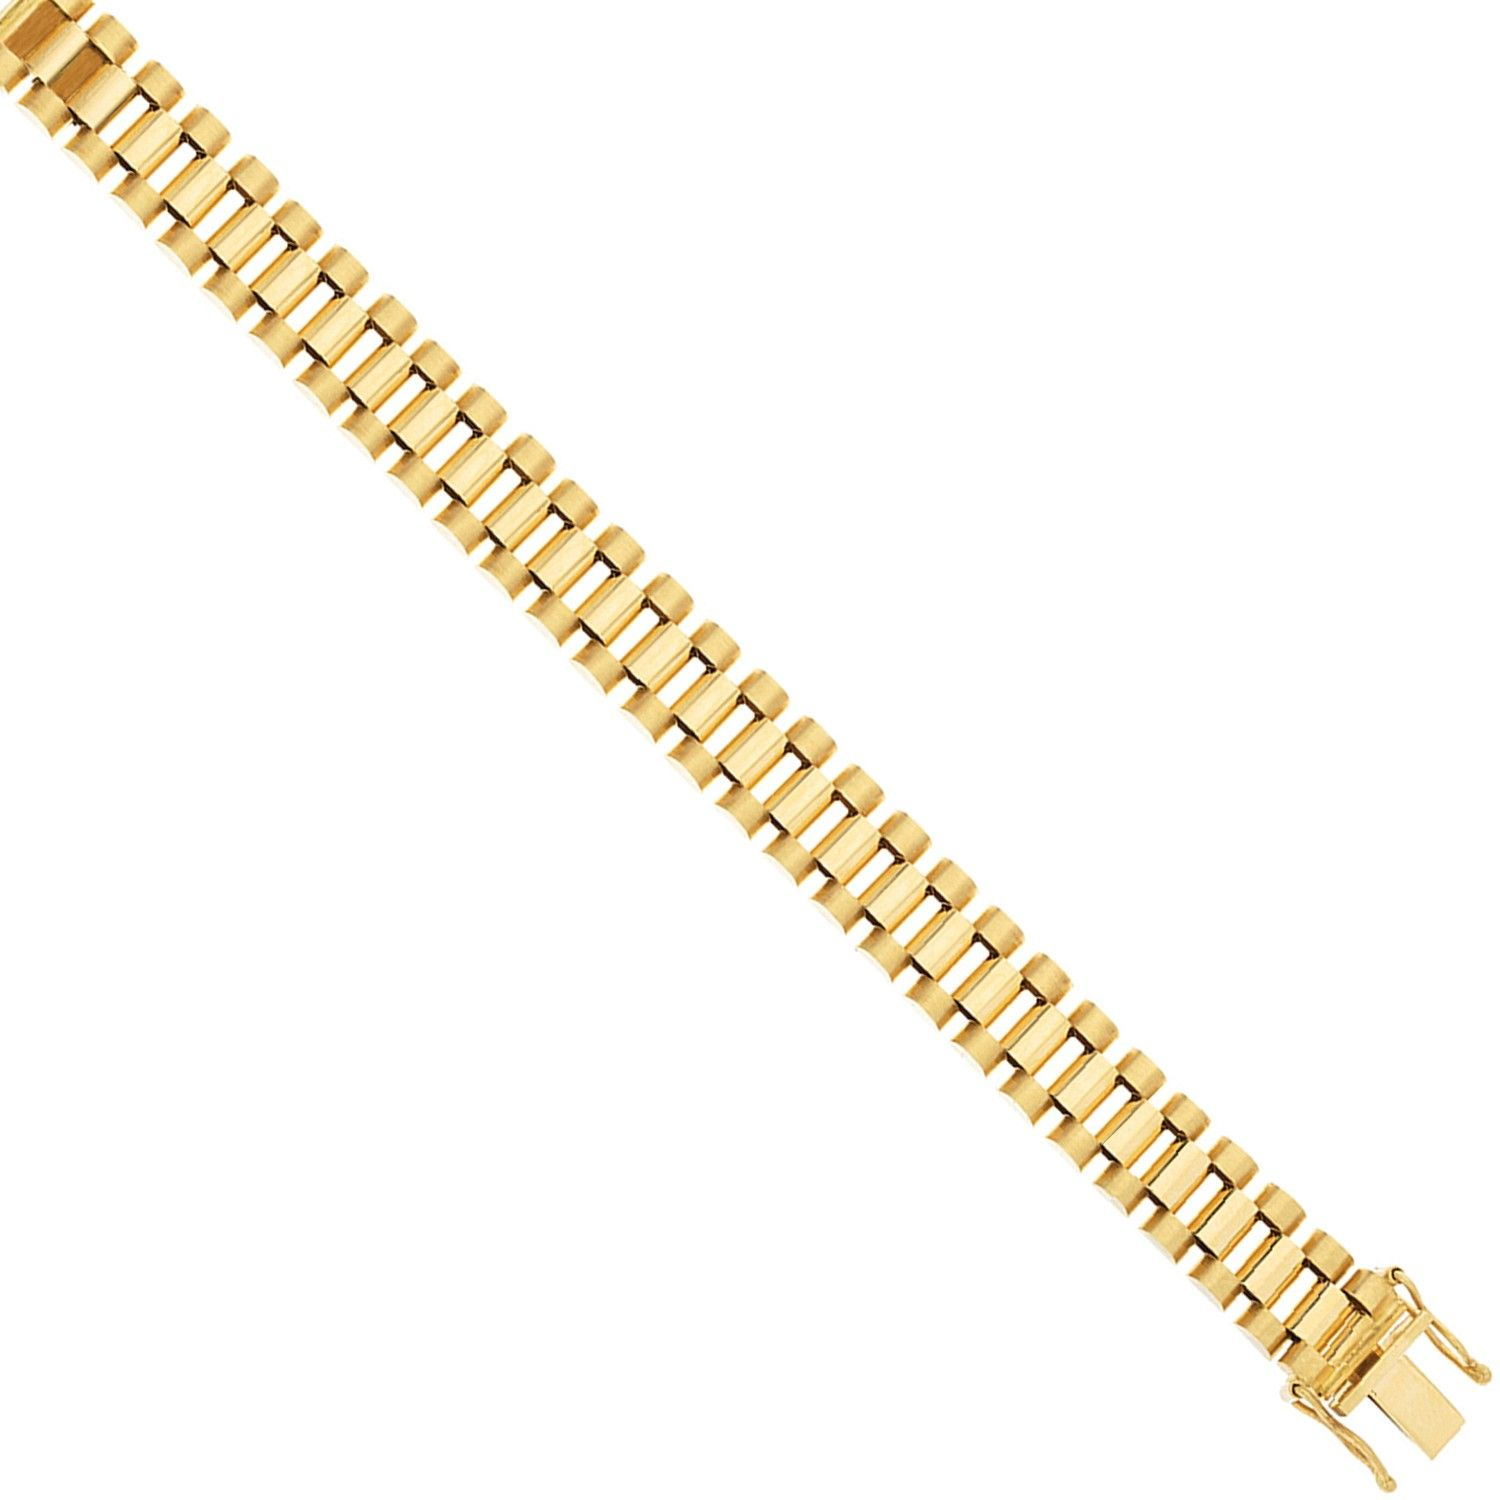 9ct Yellow Gold Rolex Inspired Bracelet